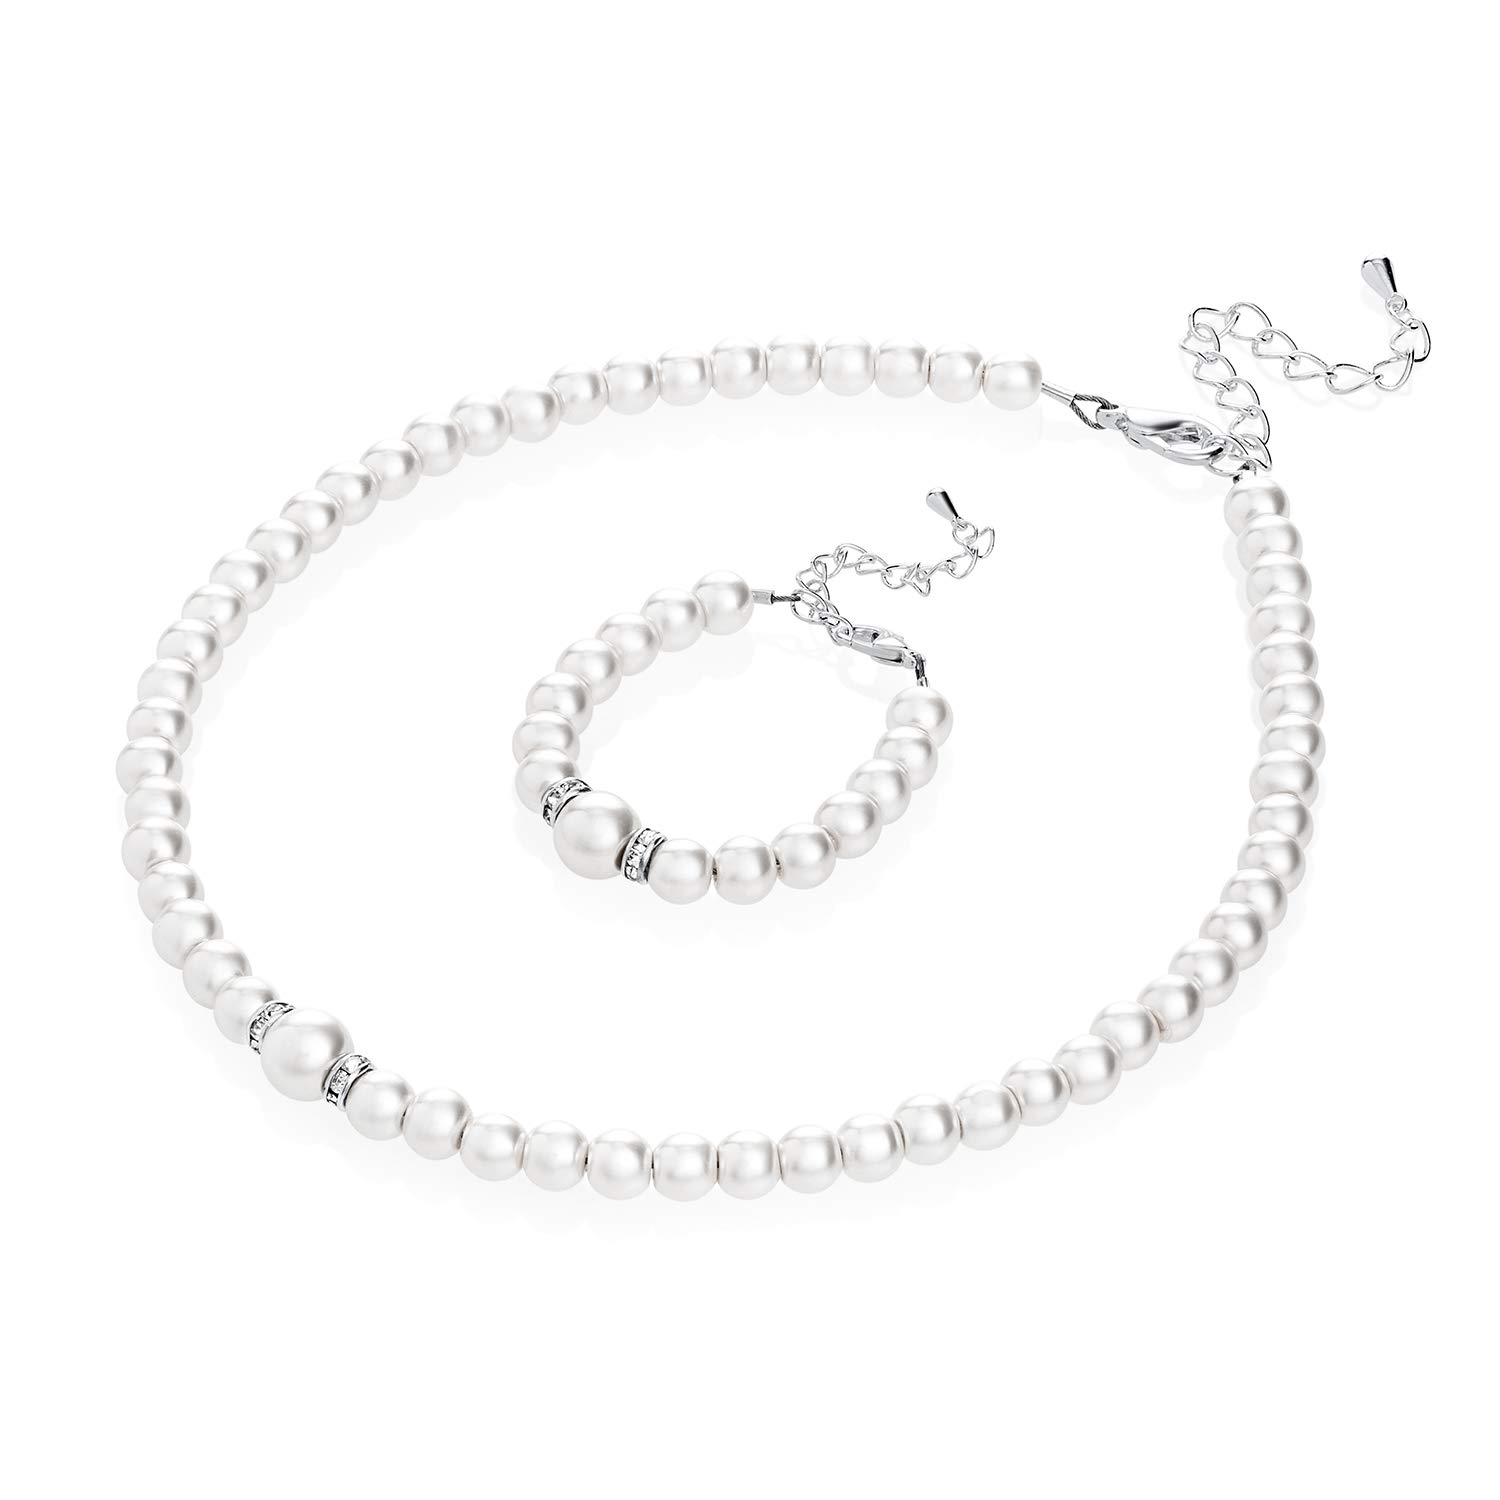 Crystal Dream Elegant Sterling Silver Roundels Keepsake Baby Girl Bracelet and Necklace Gift Set with Swarovski White Simulated Pearls (GSNB131_M)